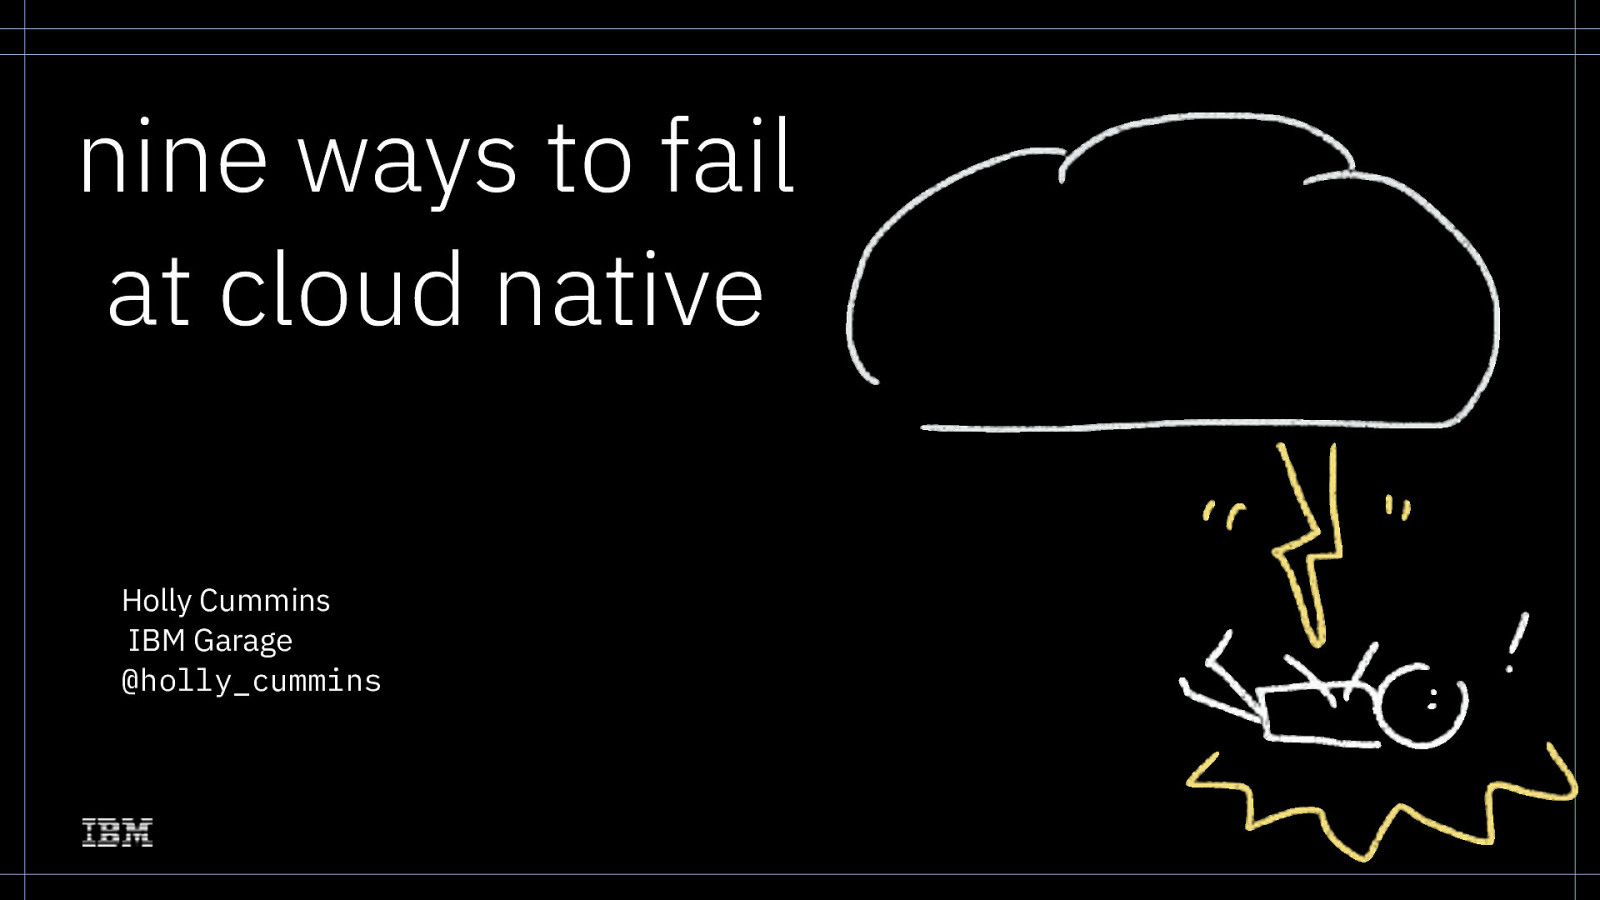 Nine Ways To Fail at Cloud Native by Holly Cummins